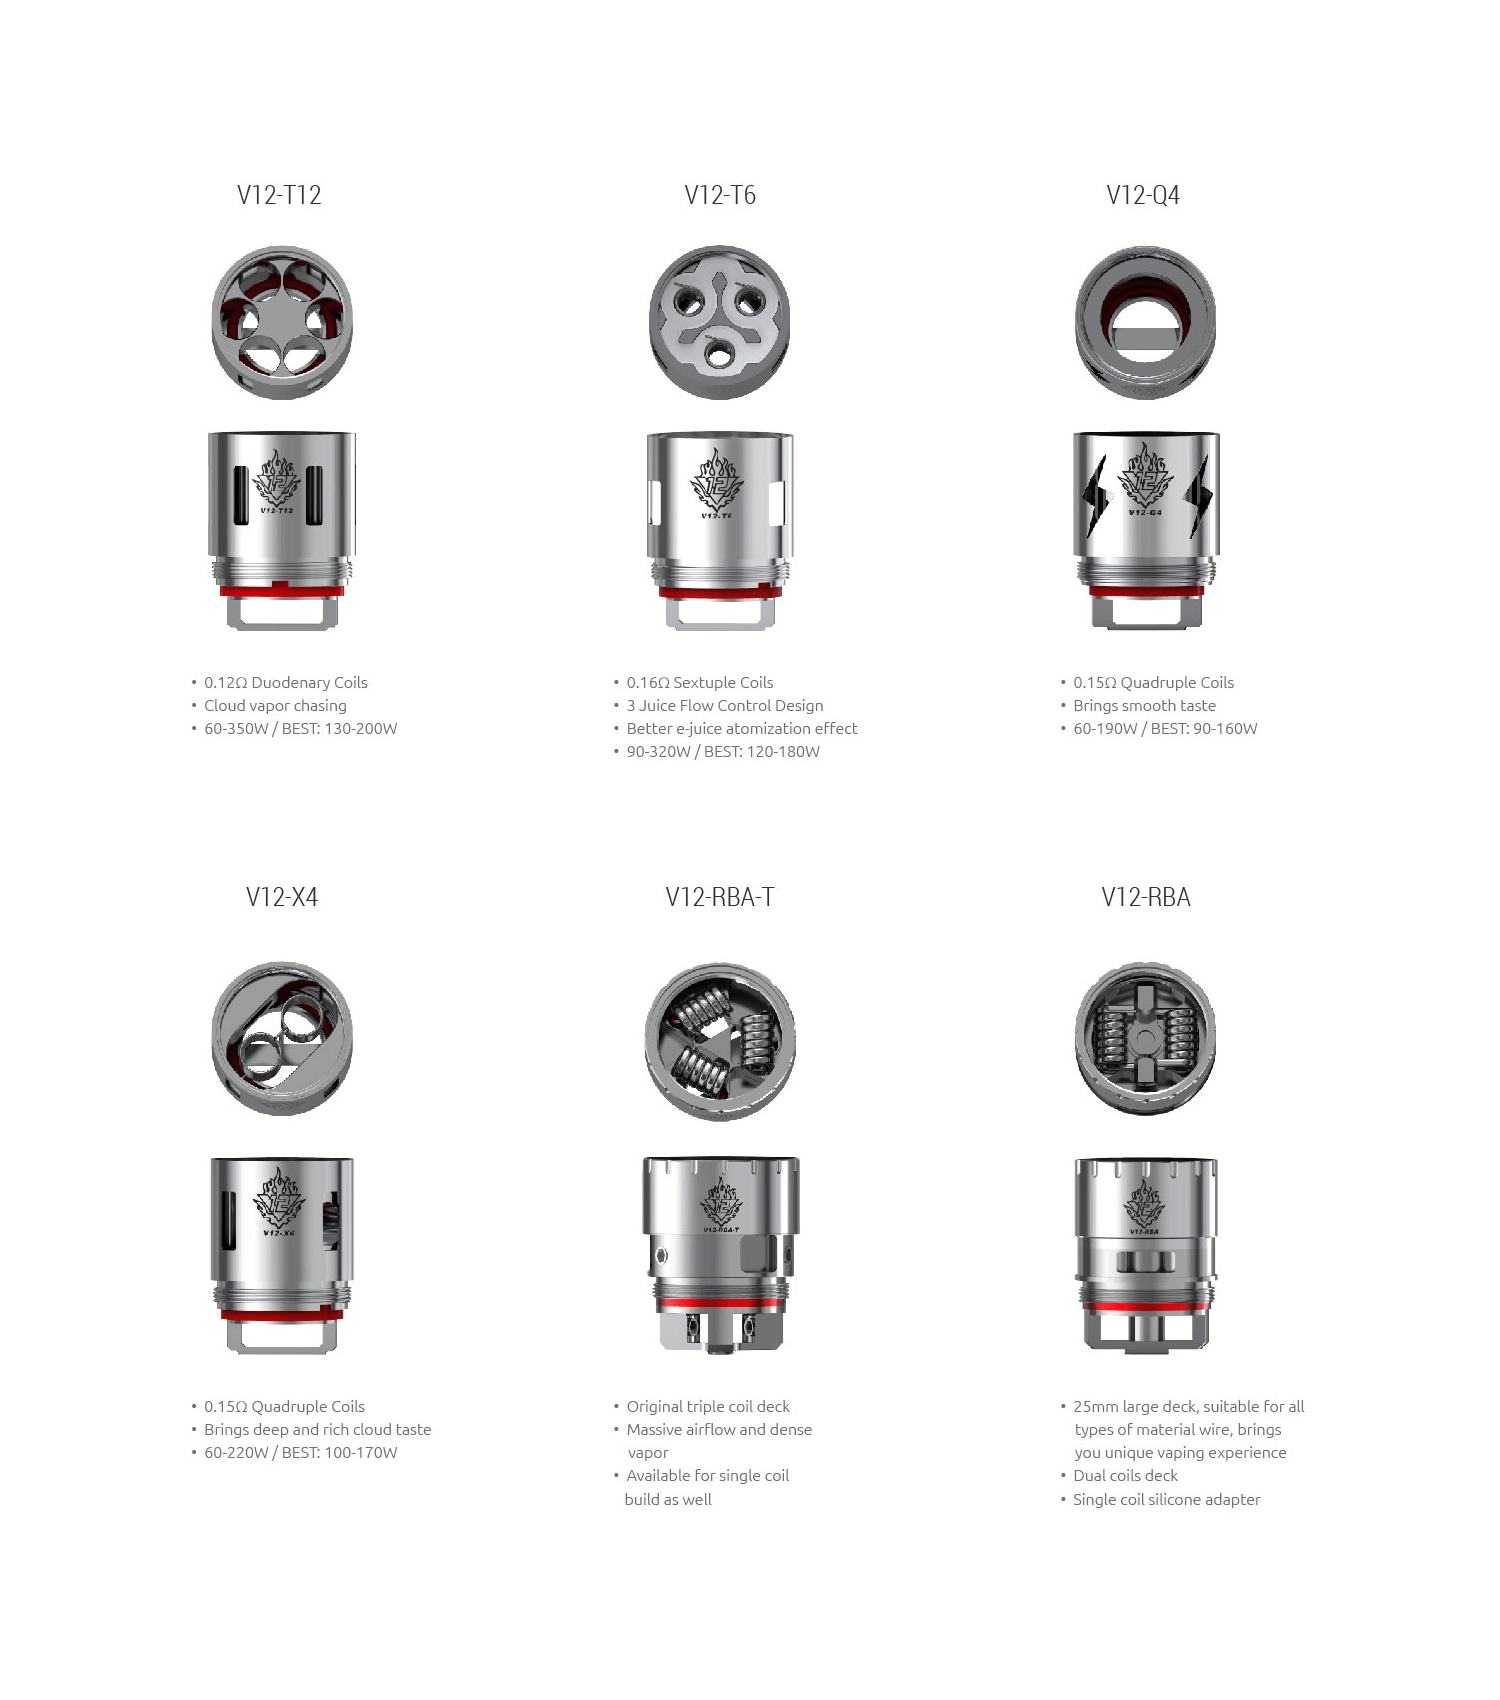 The Smok Tfv12 Cloud Beast King Preview